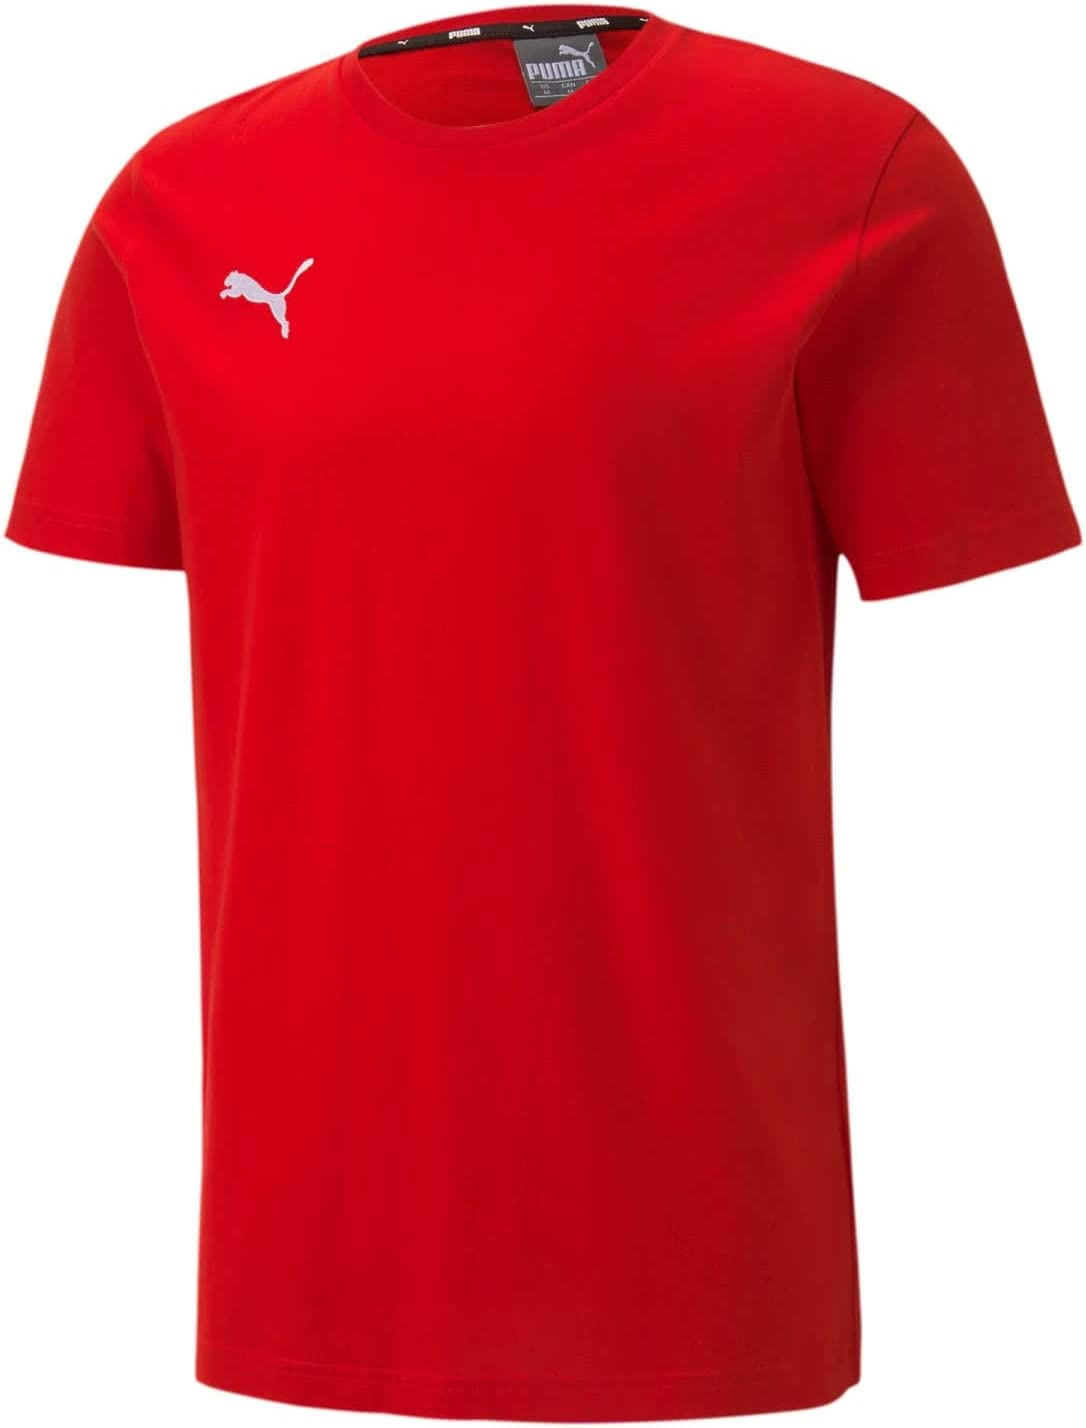 PUMA Teamgoal 23 Casuals tee - Camiseta Hombre: Amazon.es ...